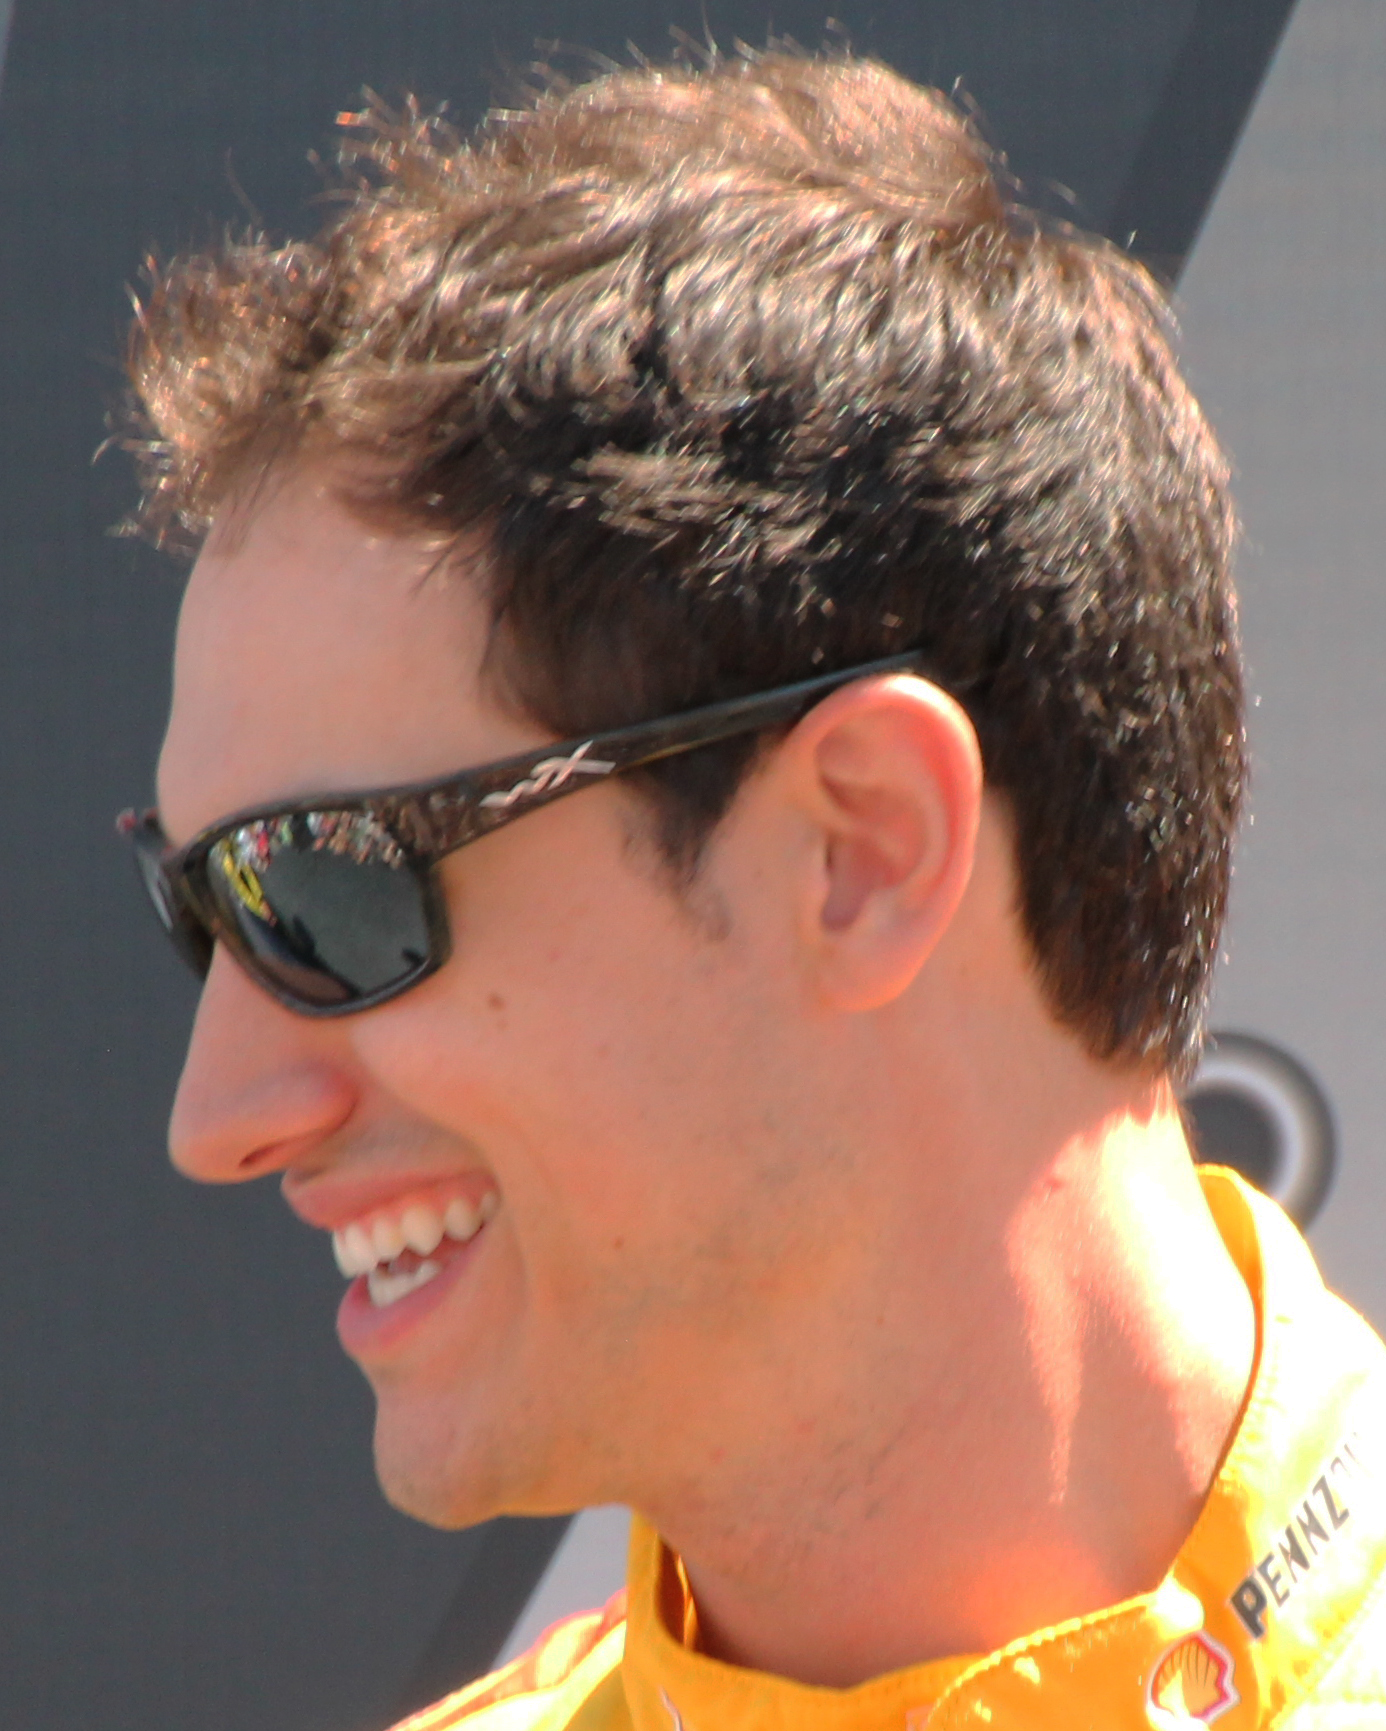 The 28-year old son of father Tom Logano and mother(?) Joey Logano in 2018 photo. Joey Logano earned a  million dollar salary - leaving the net worth at 18 million in 2018